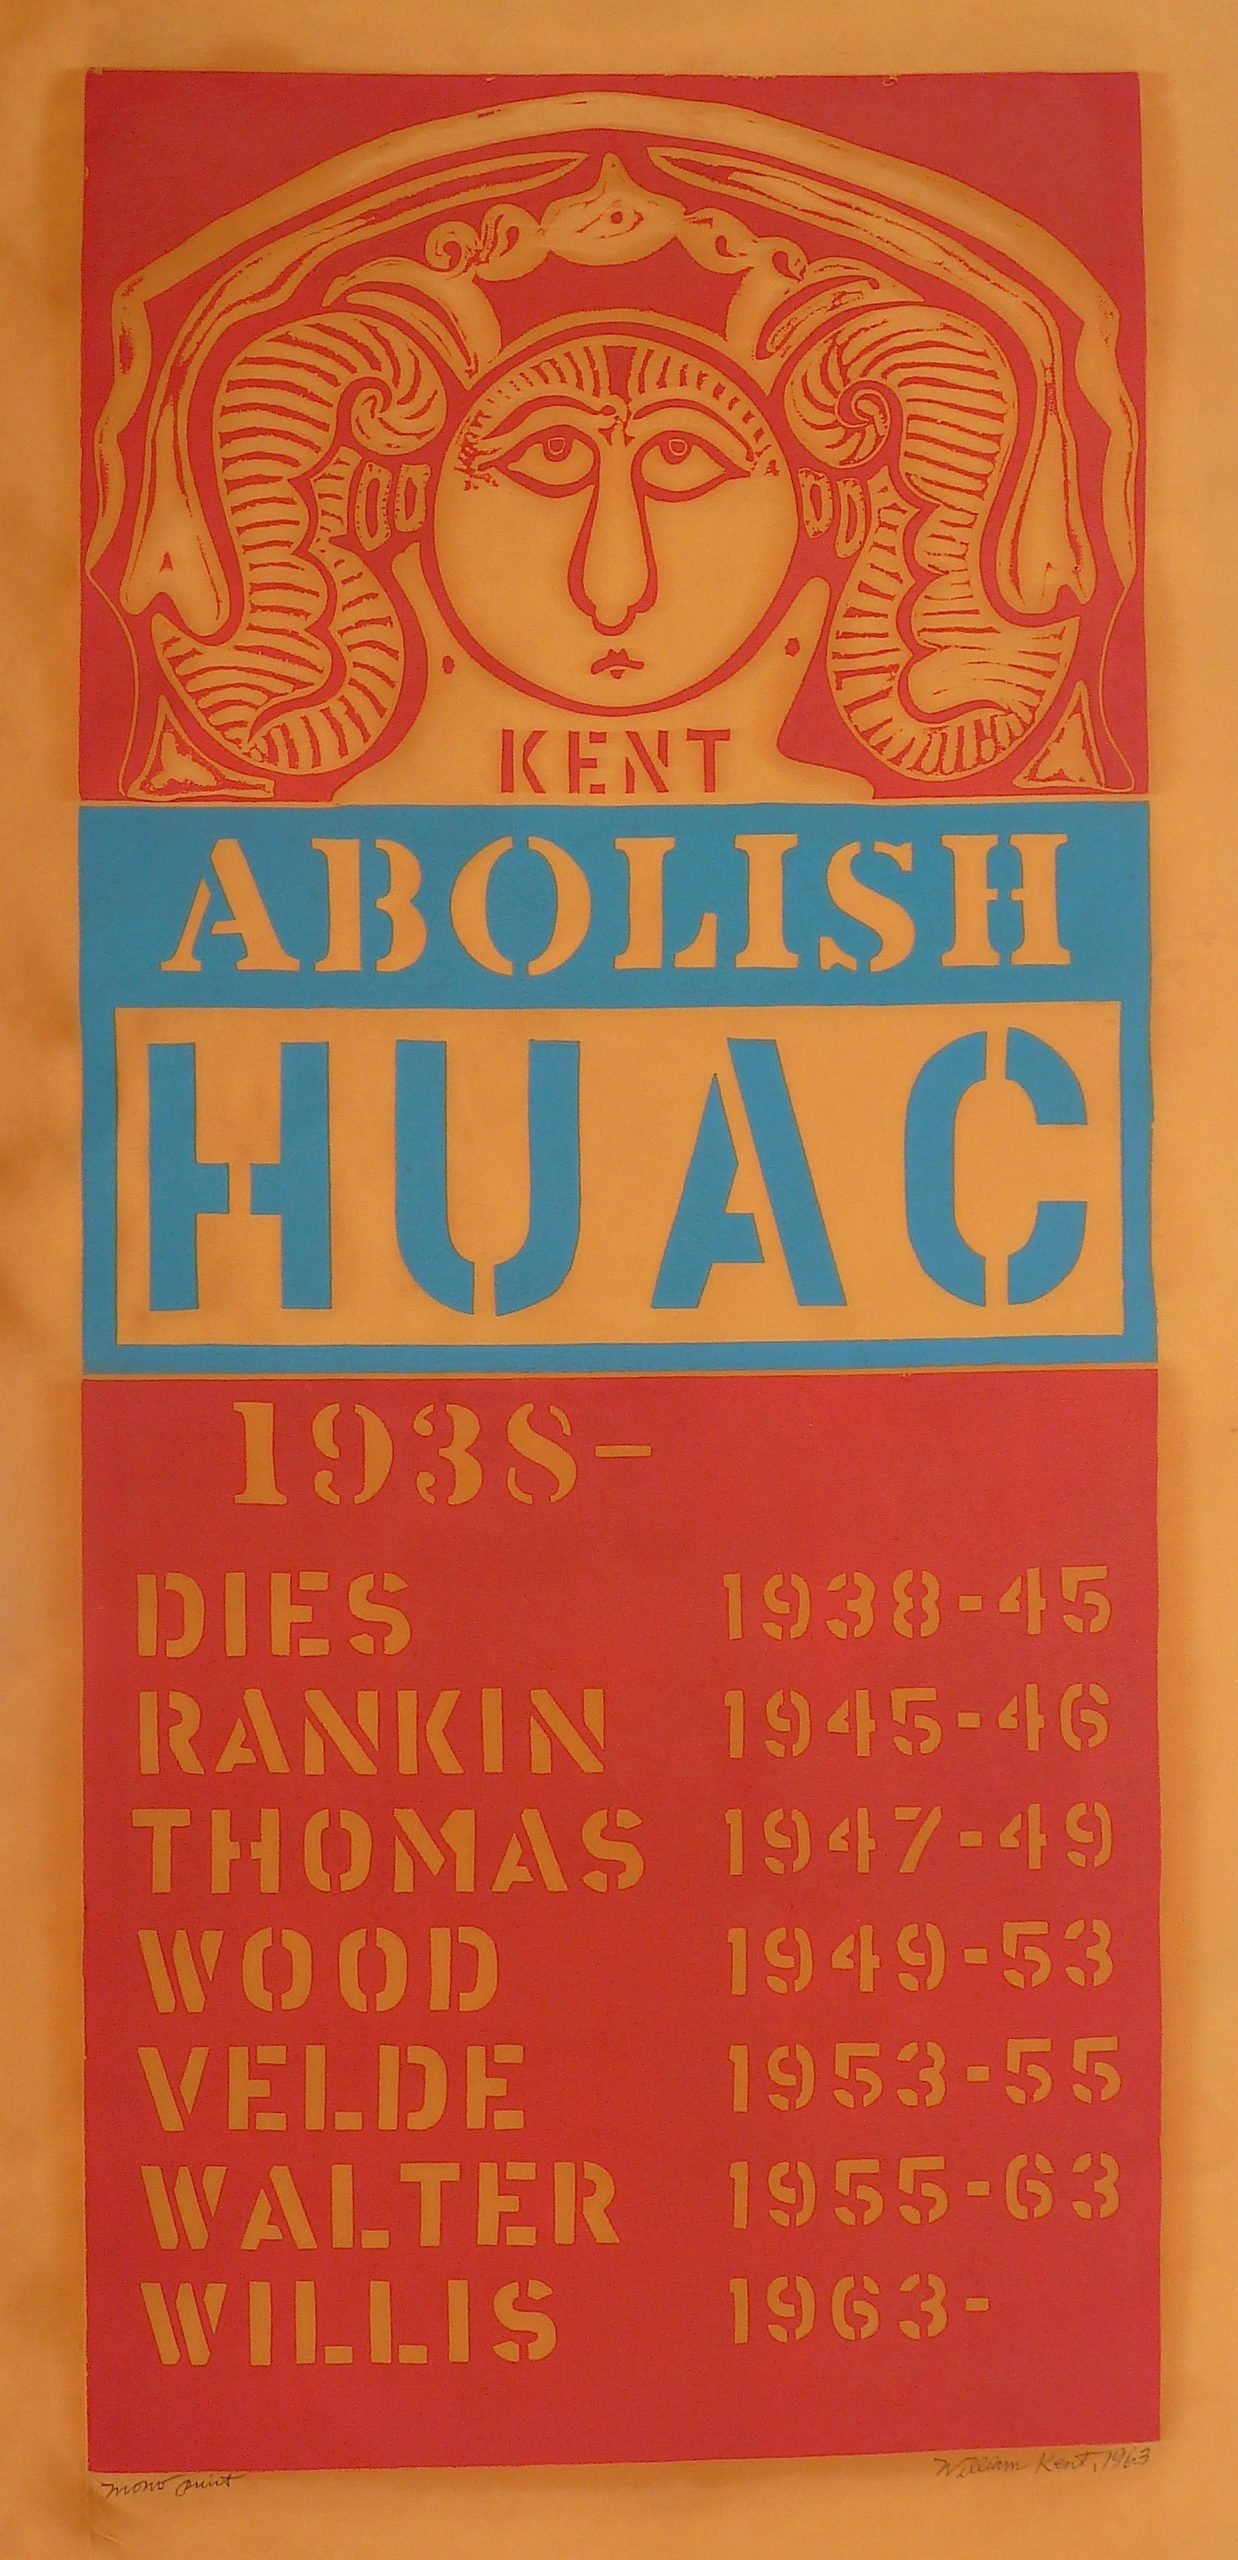 Abolish HUAC (House on Un-American Activities Committee) by William Kent